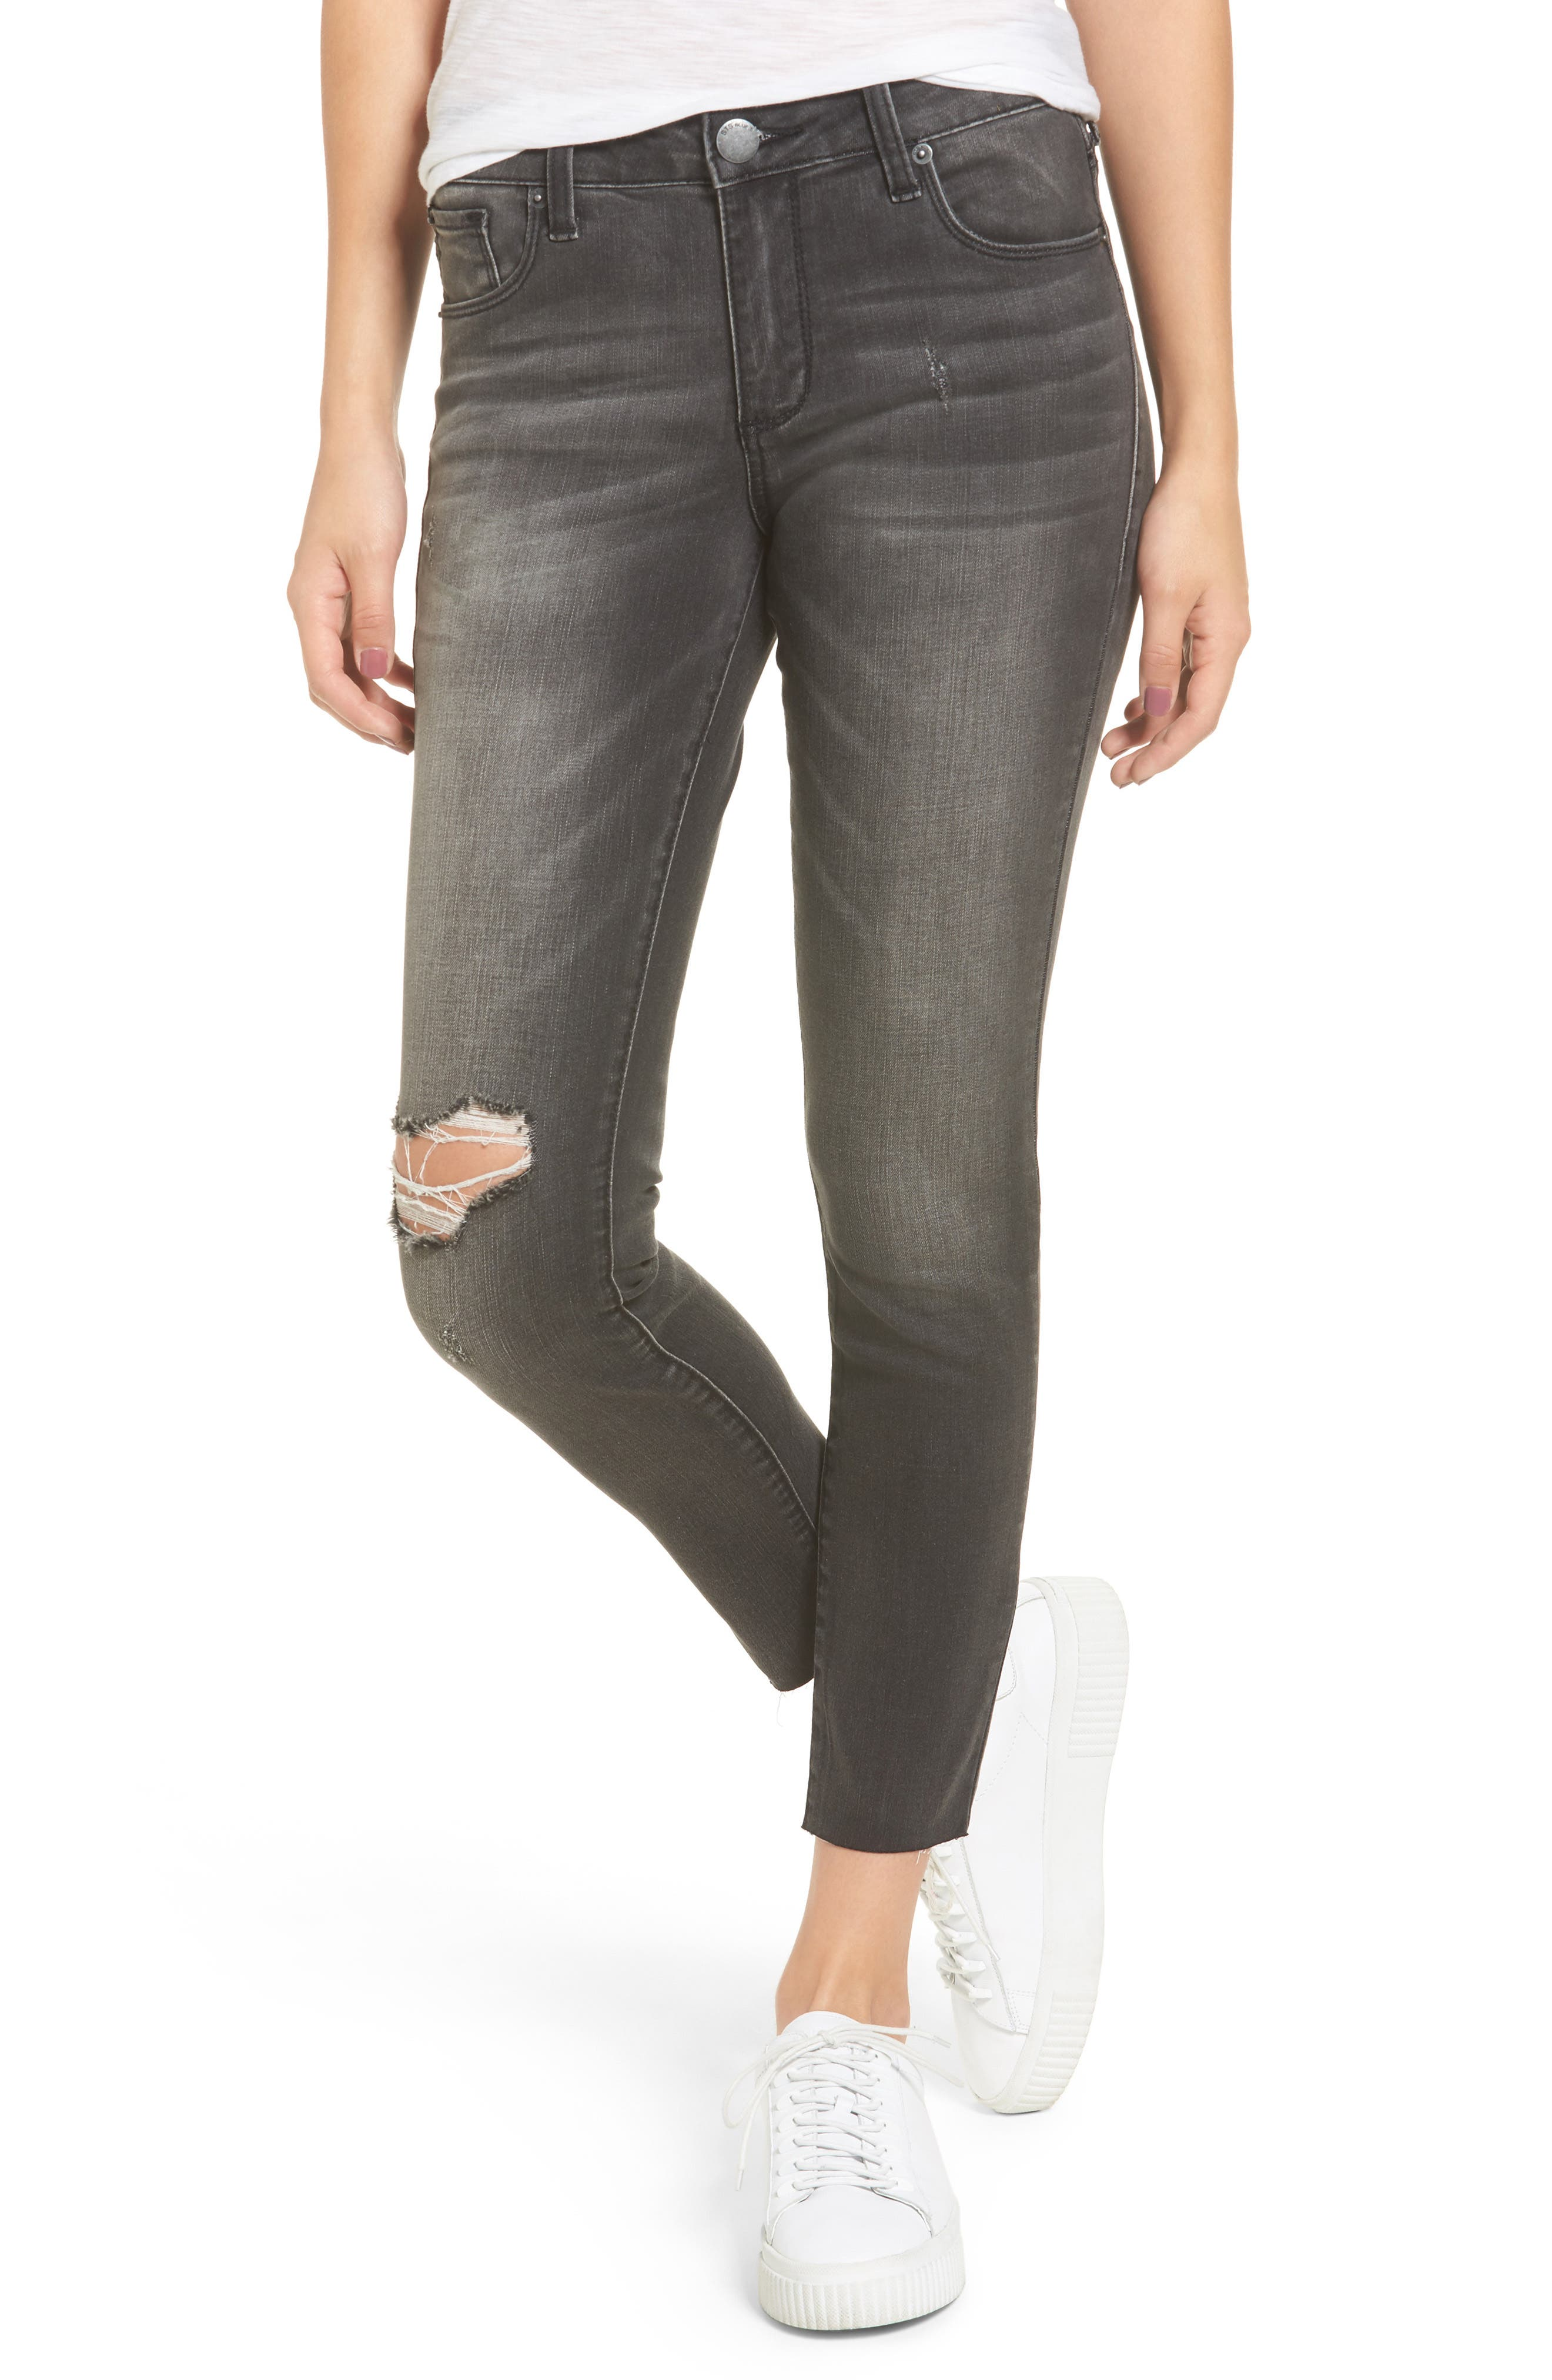 STS Emma Ripped Crop Skinny Jeans,                         Main,                         color, Jennings